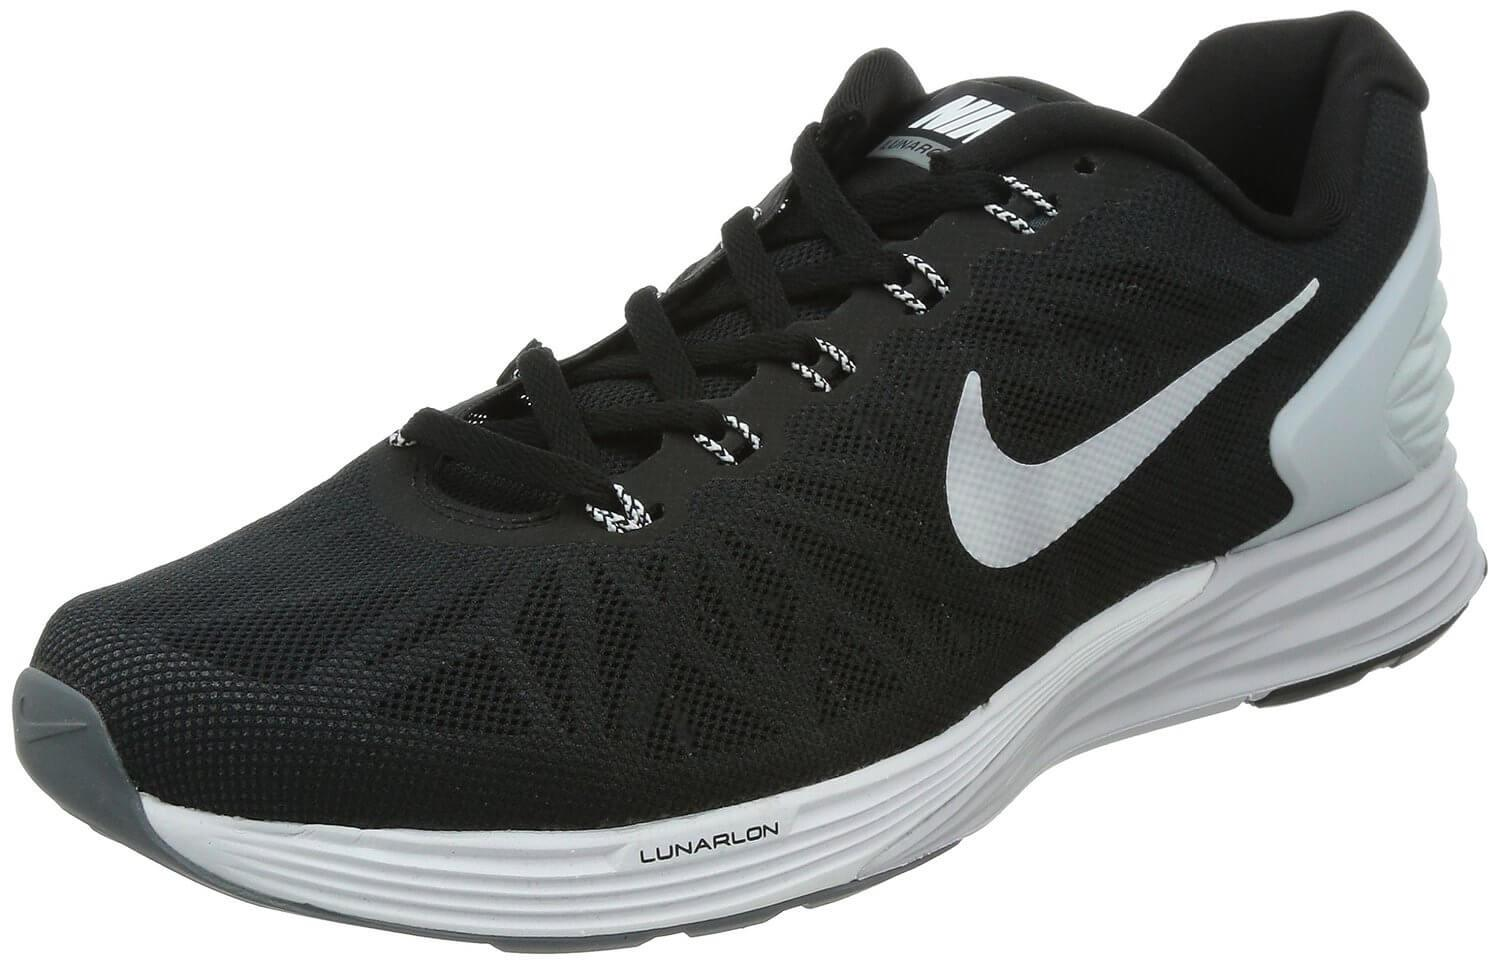 more photos 3717c 8b349 the Nike LunarGlide 6 is a great everyday running shoe, especially for  runners with overpronation ...